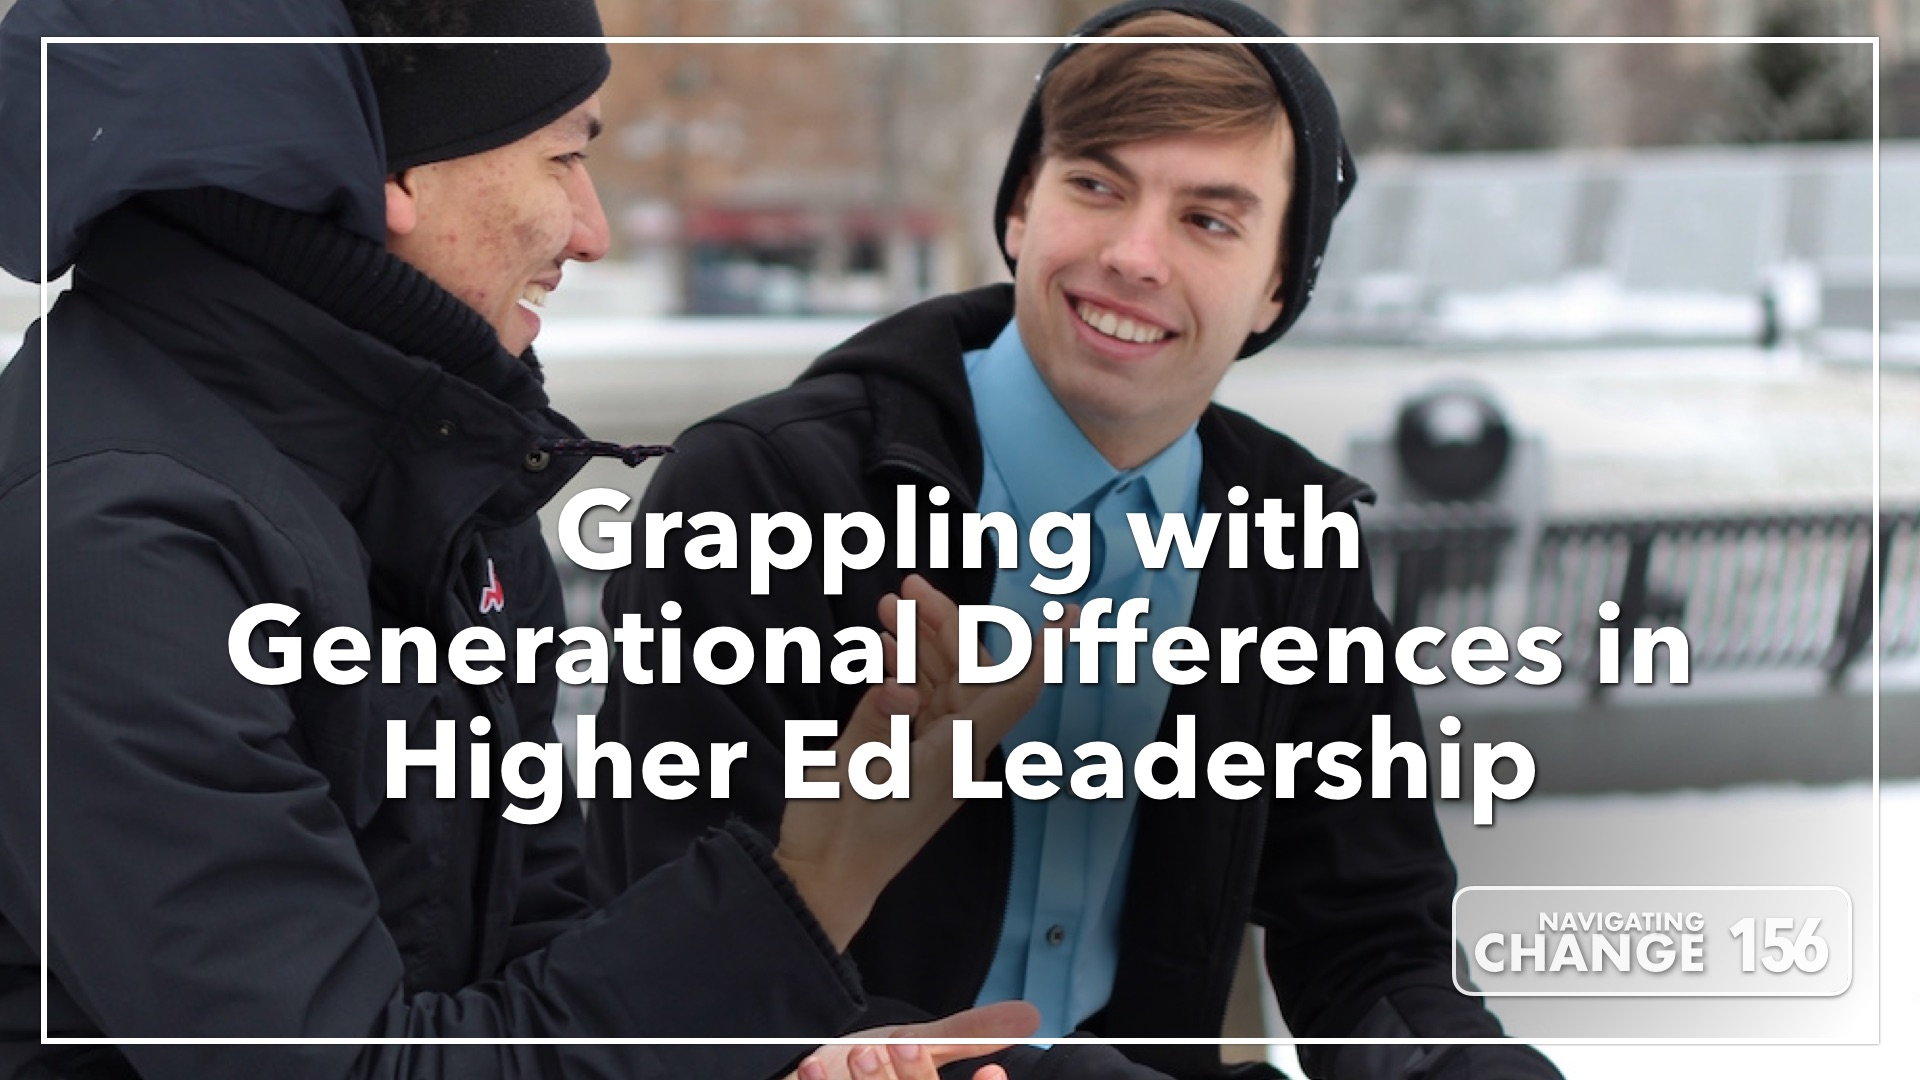 Listen to Generational Differences on Navigating Change the Education Podcast